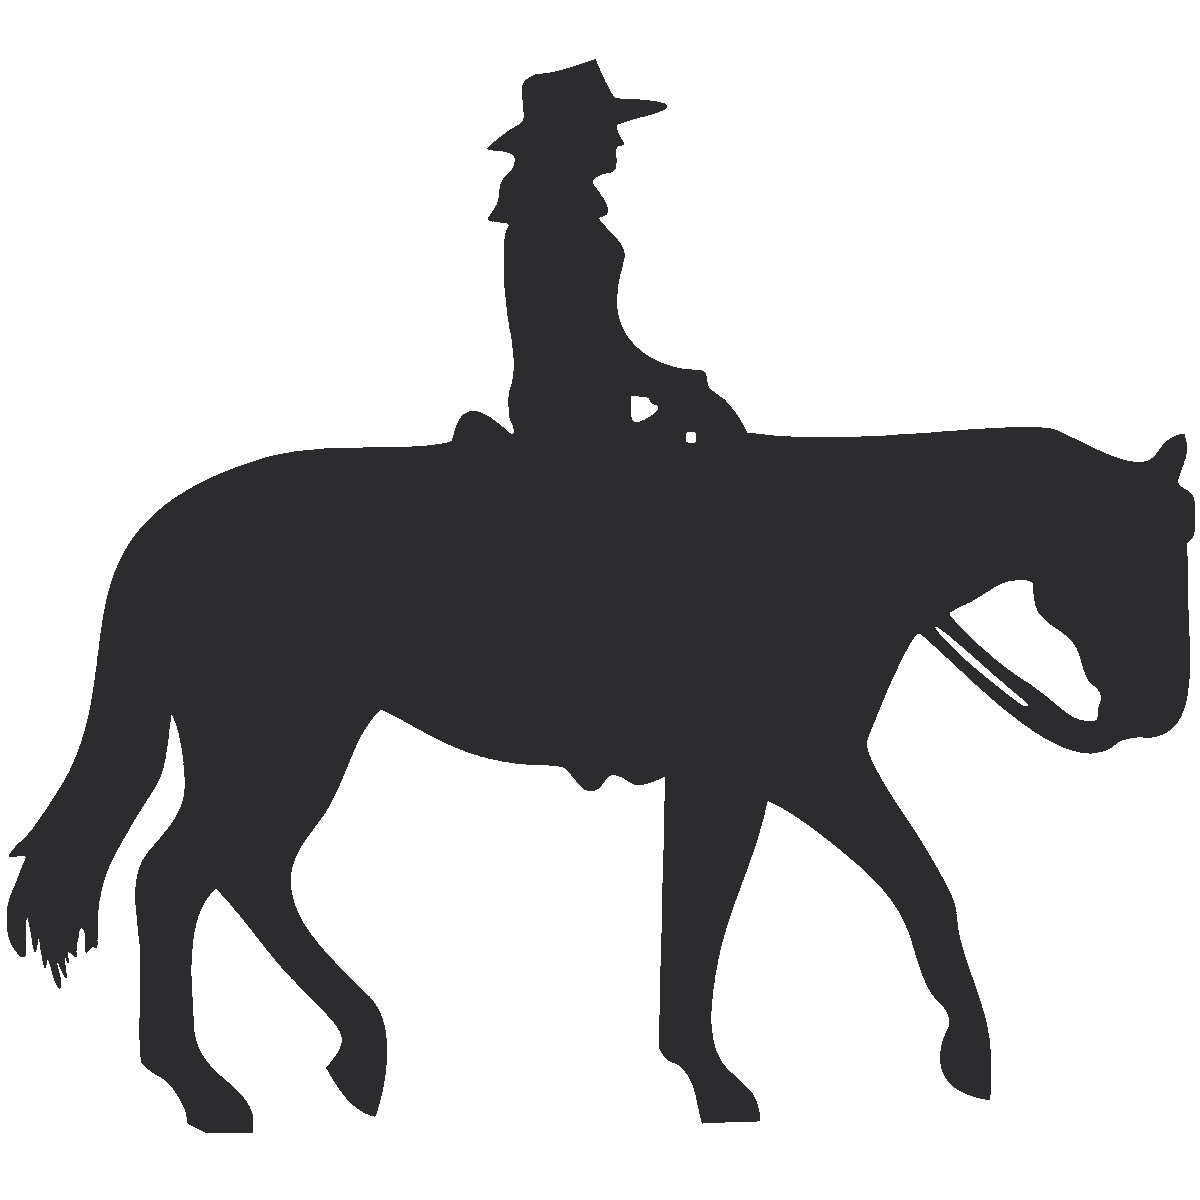 royalty free download Western horse clip art